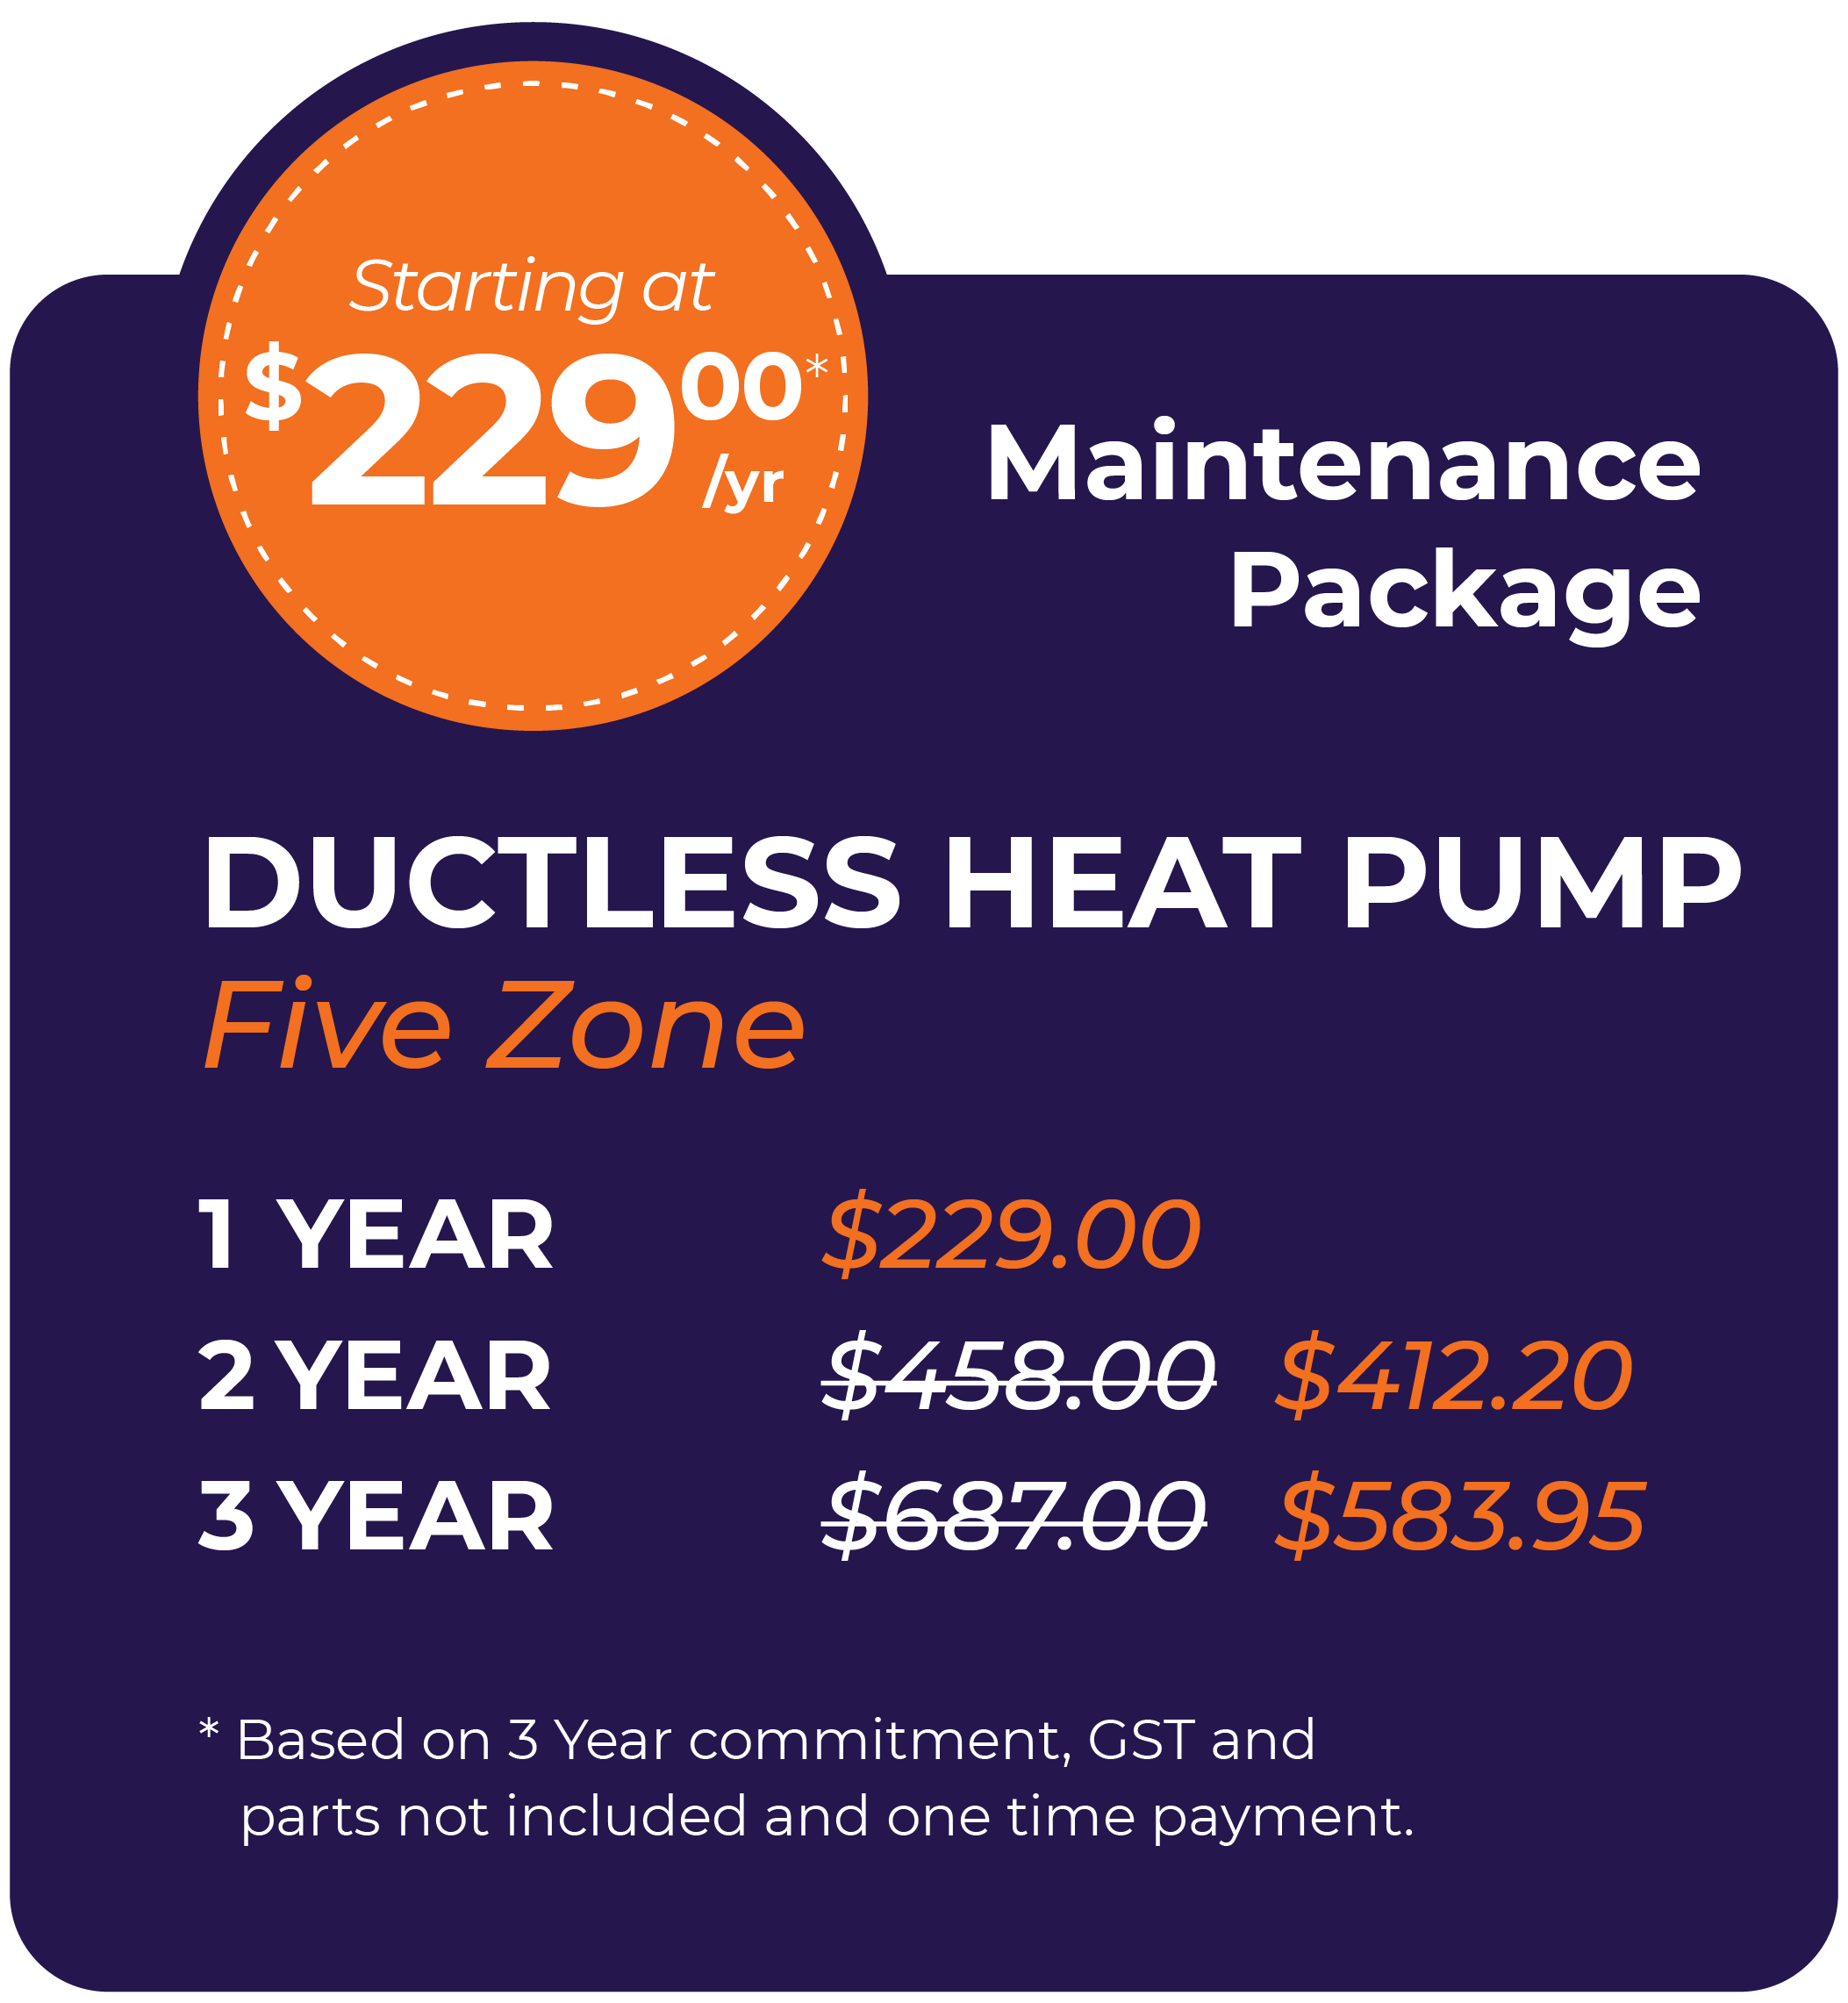 Ductless Heat Pump Five Zone Maintenance Package